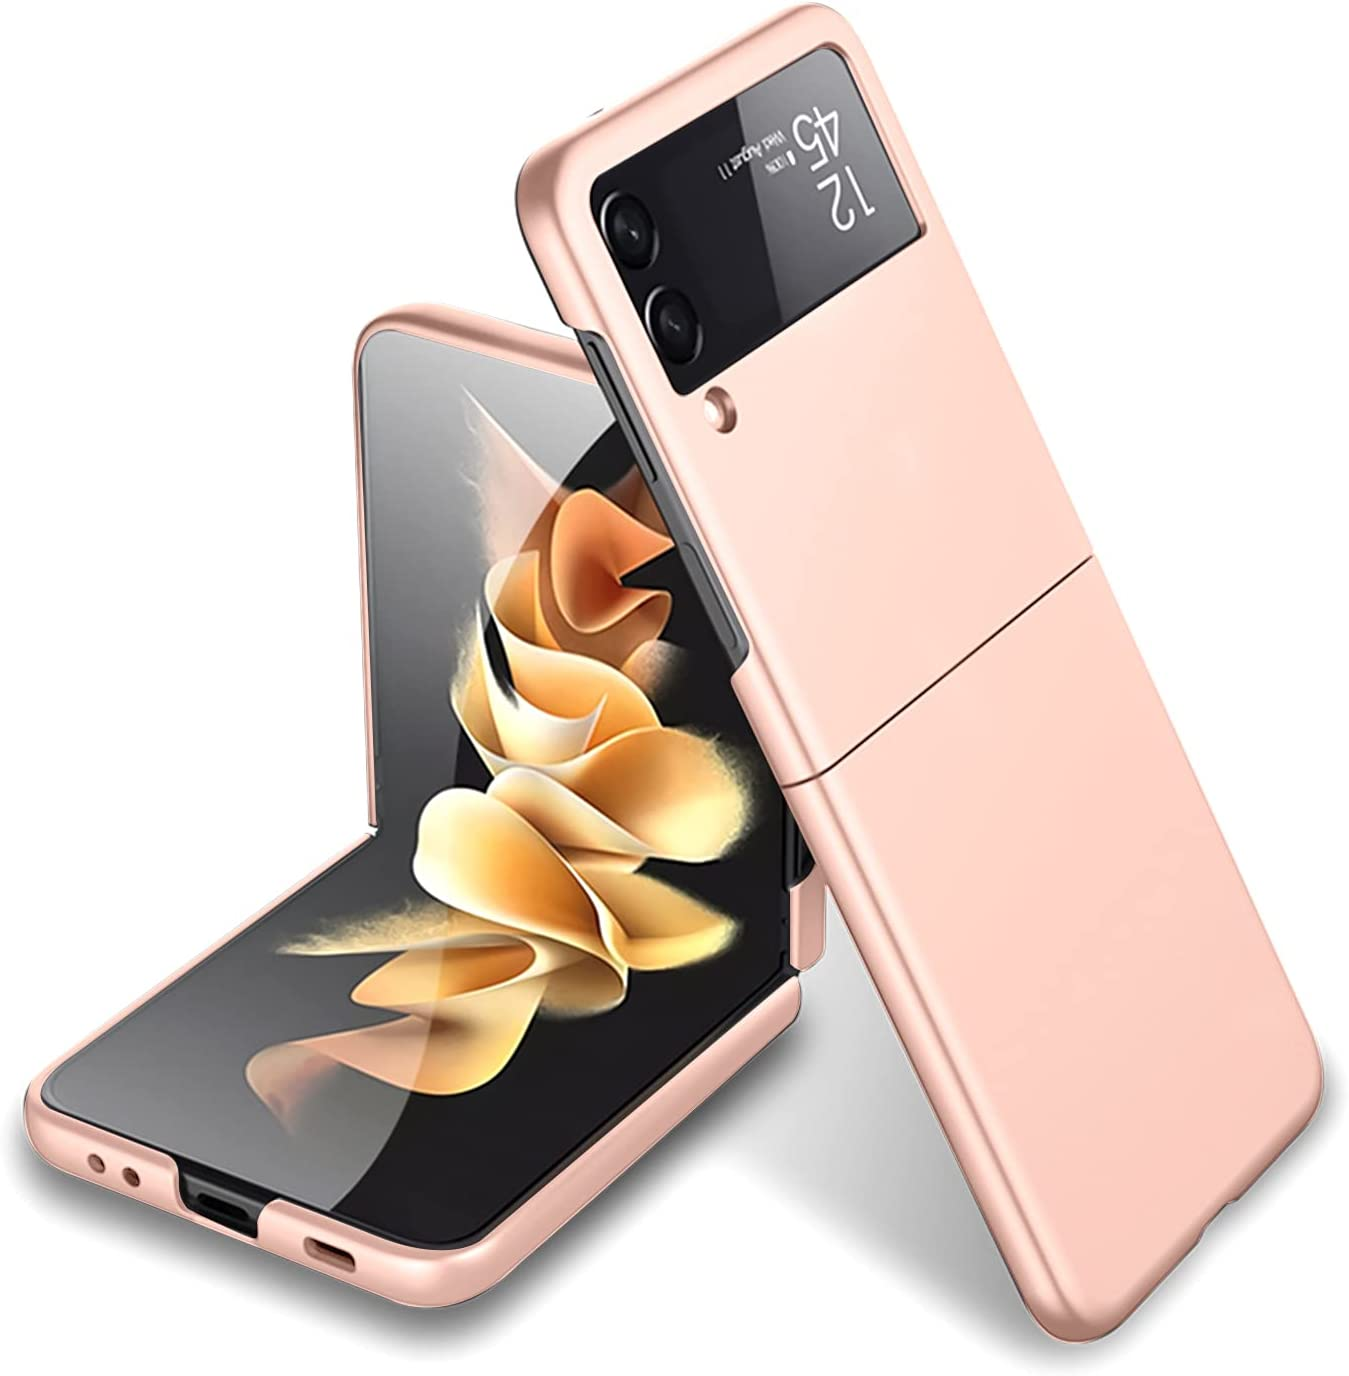 MZELQ Compatible with Samsung Galaxy Z Flip 3 5G Case Shockproof PC Hard Cover for Girls Women -Pink